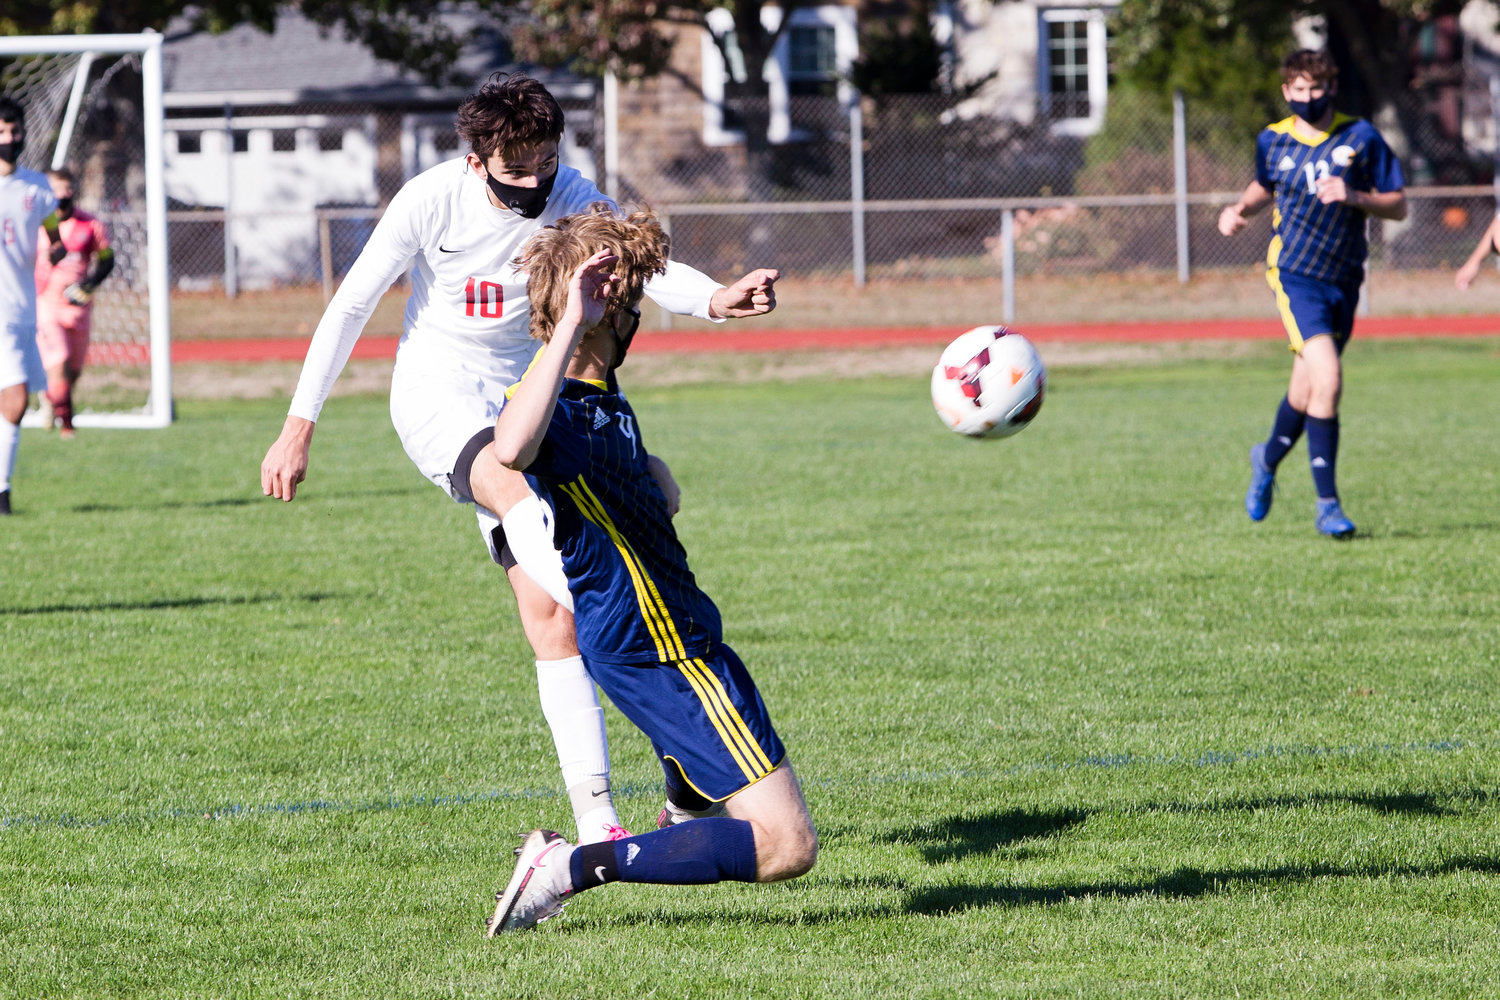 Colin Capelo boots the ball past a Barrington defender.